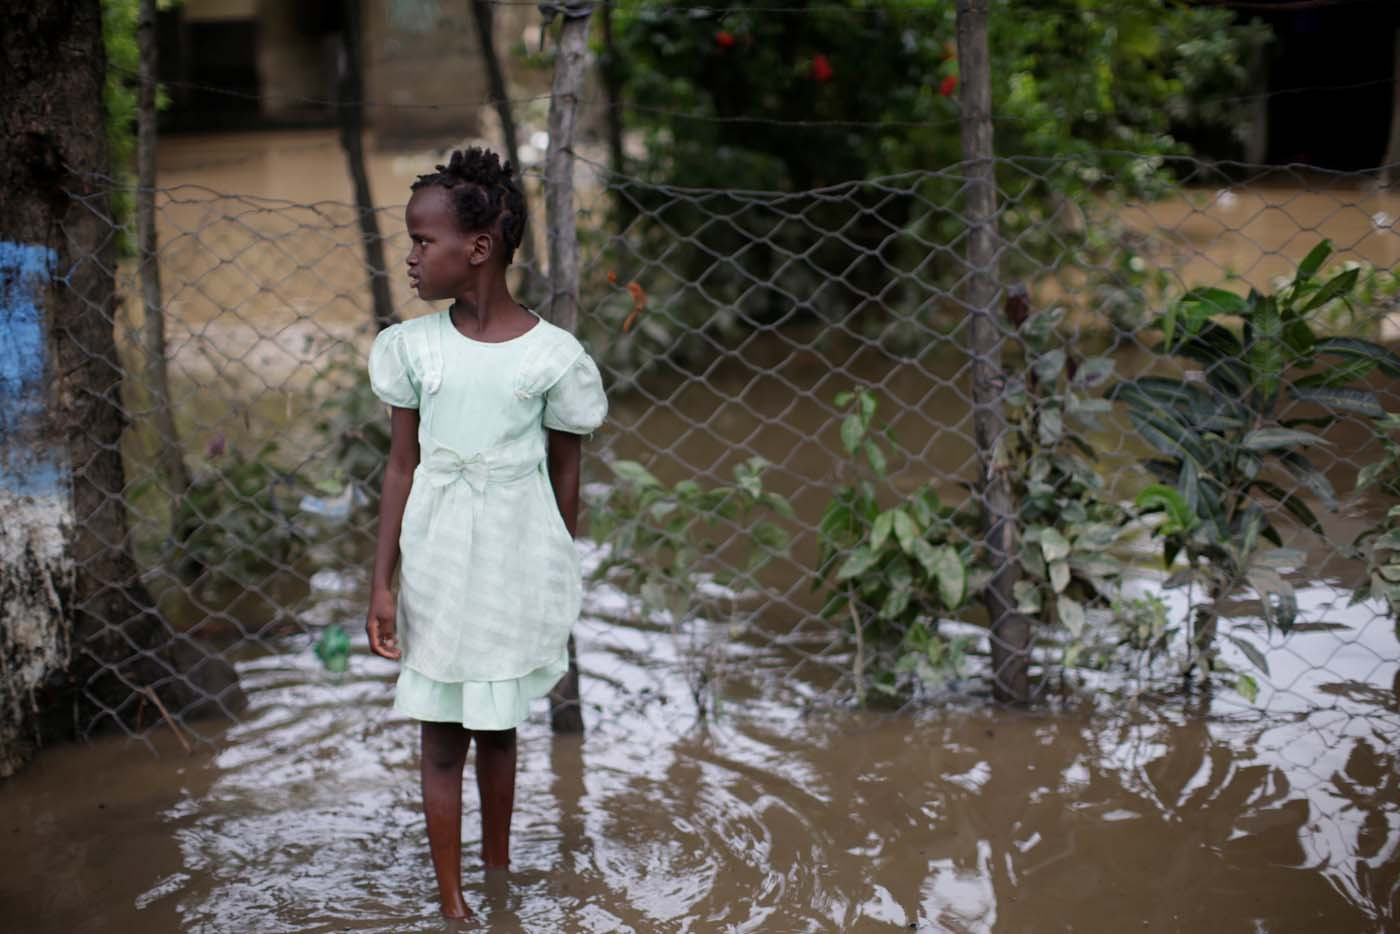 A girl stands in a flooded area after hurricane Irma in Fort Liberte, Haiti September 8, 2017. REUTERS/Andres Martinez Casares